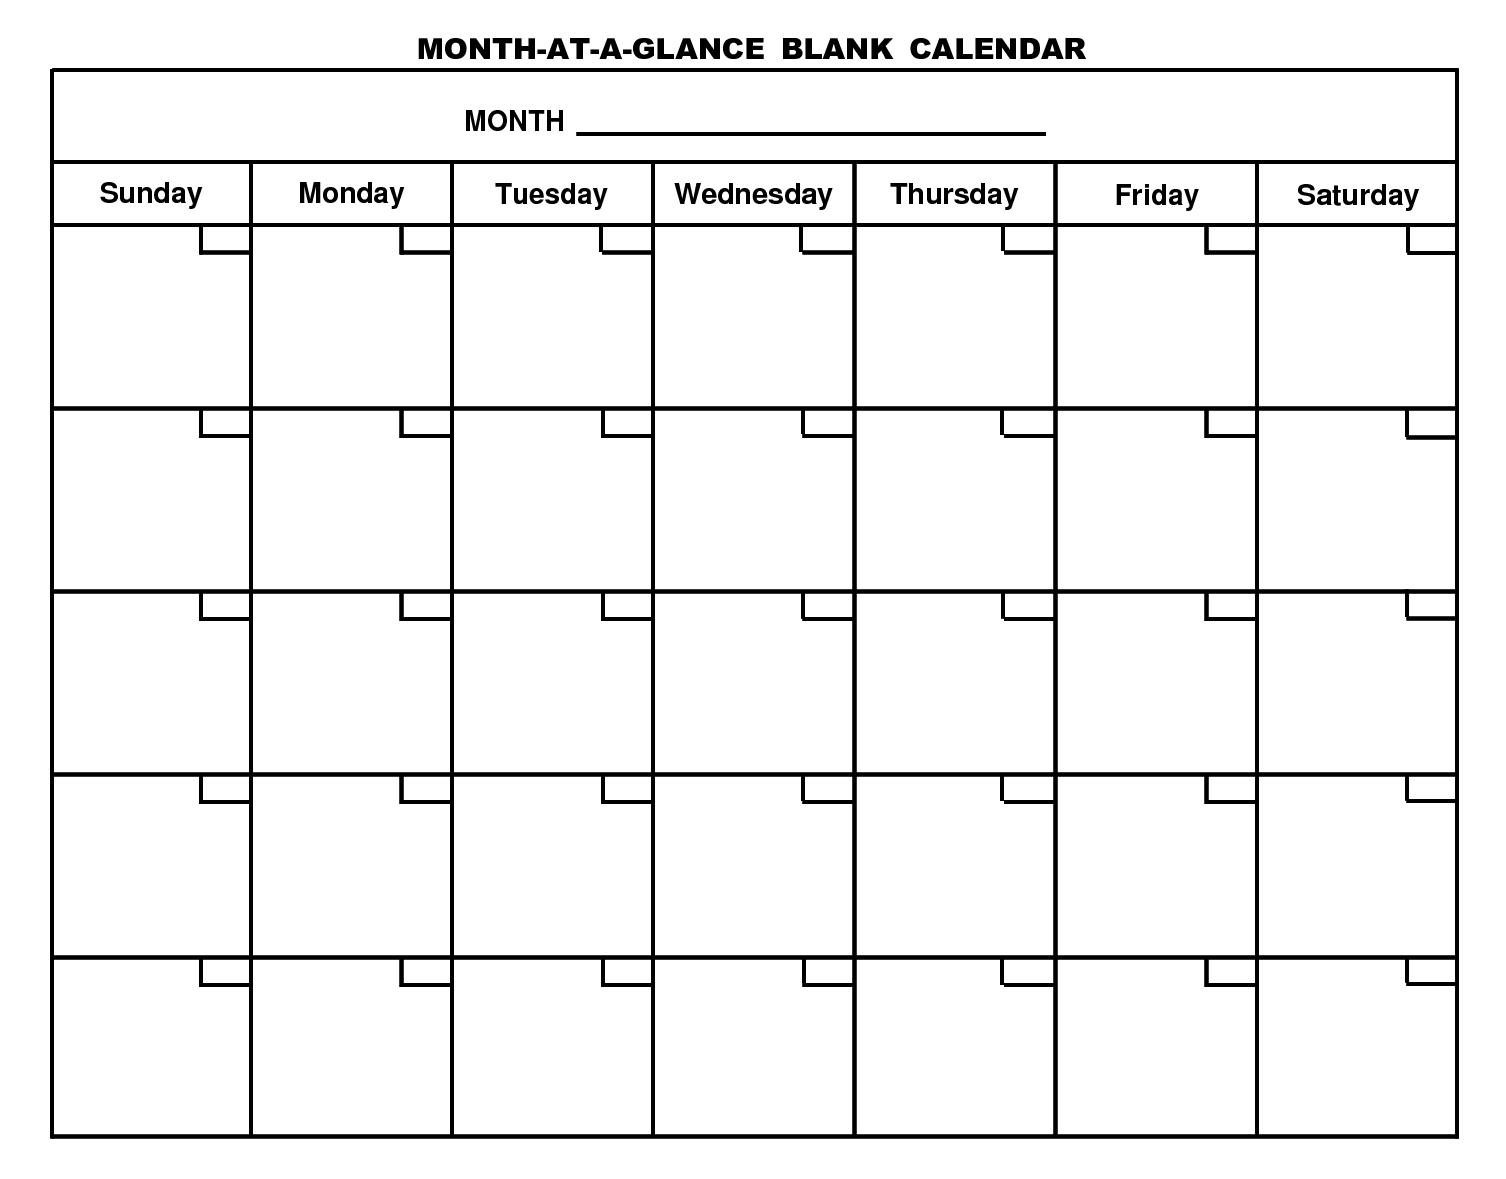 For Month At A Glance Blank Calendar Template - Free Calendar Collection  Free Printable Calendar Templates Month